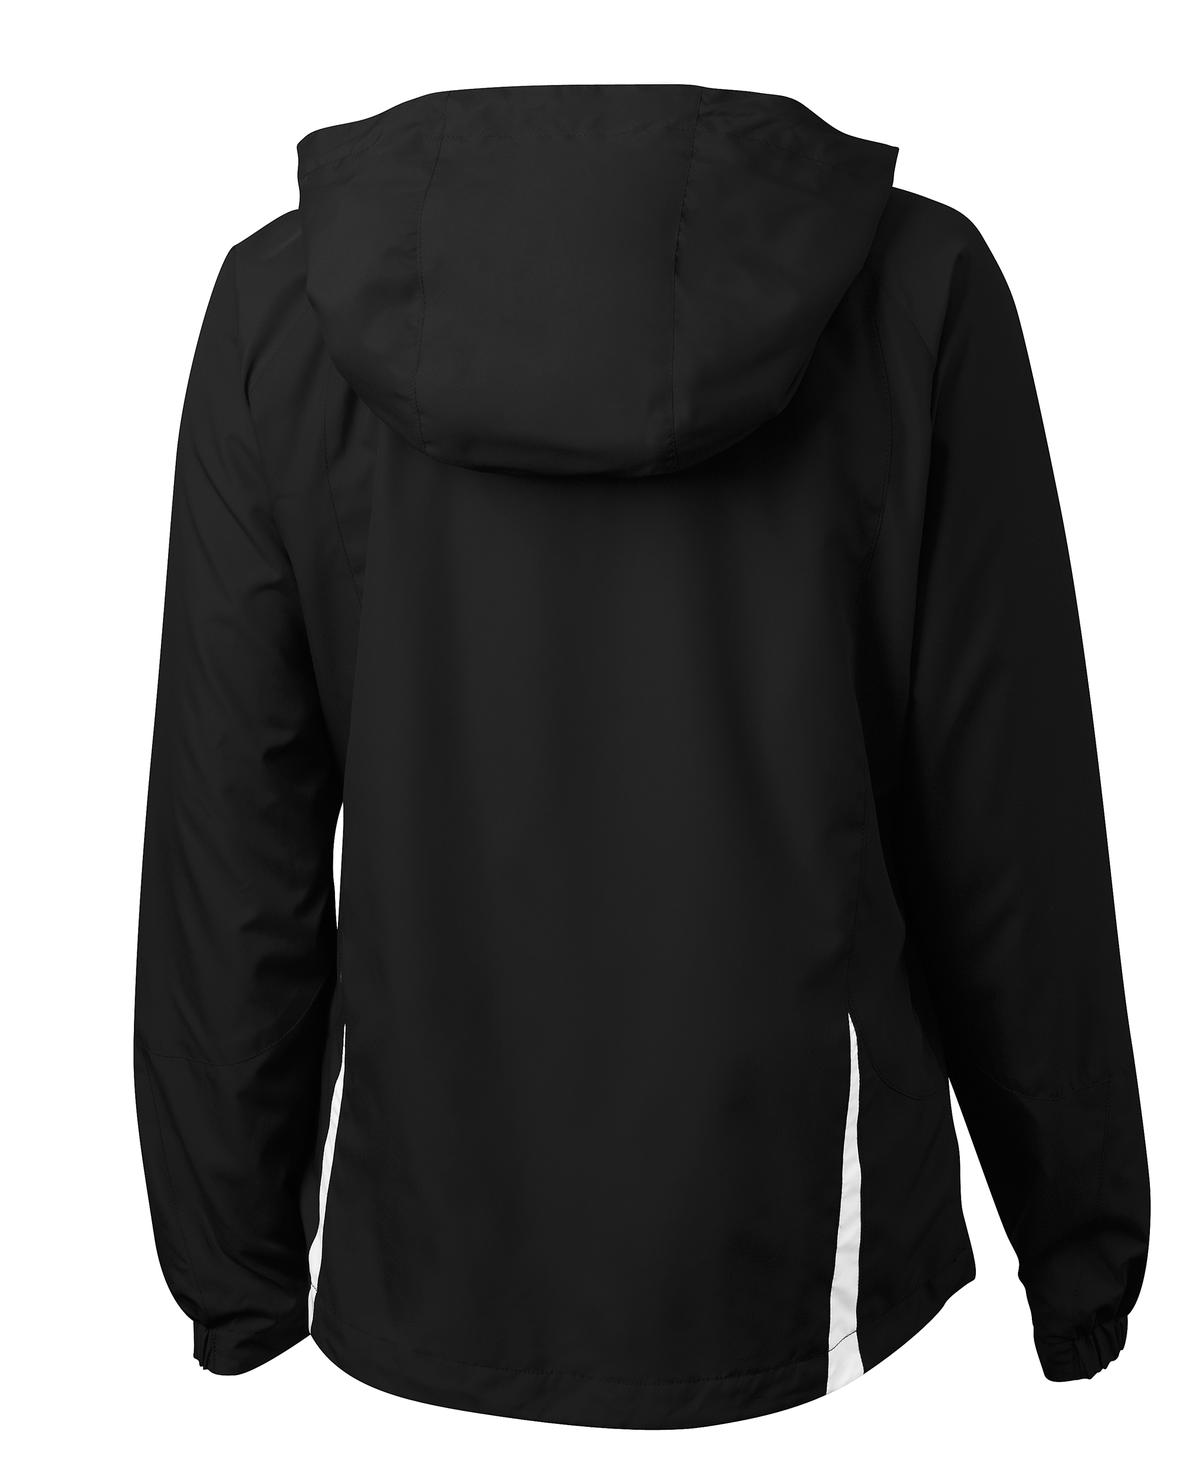 Mafoose Women's Colorblock Hooded Raglan Jacket Black/White-Back